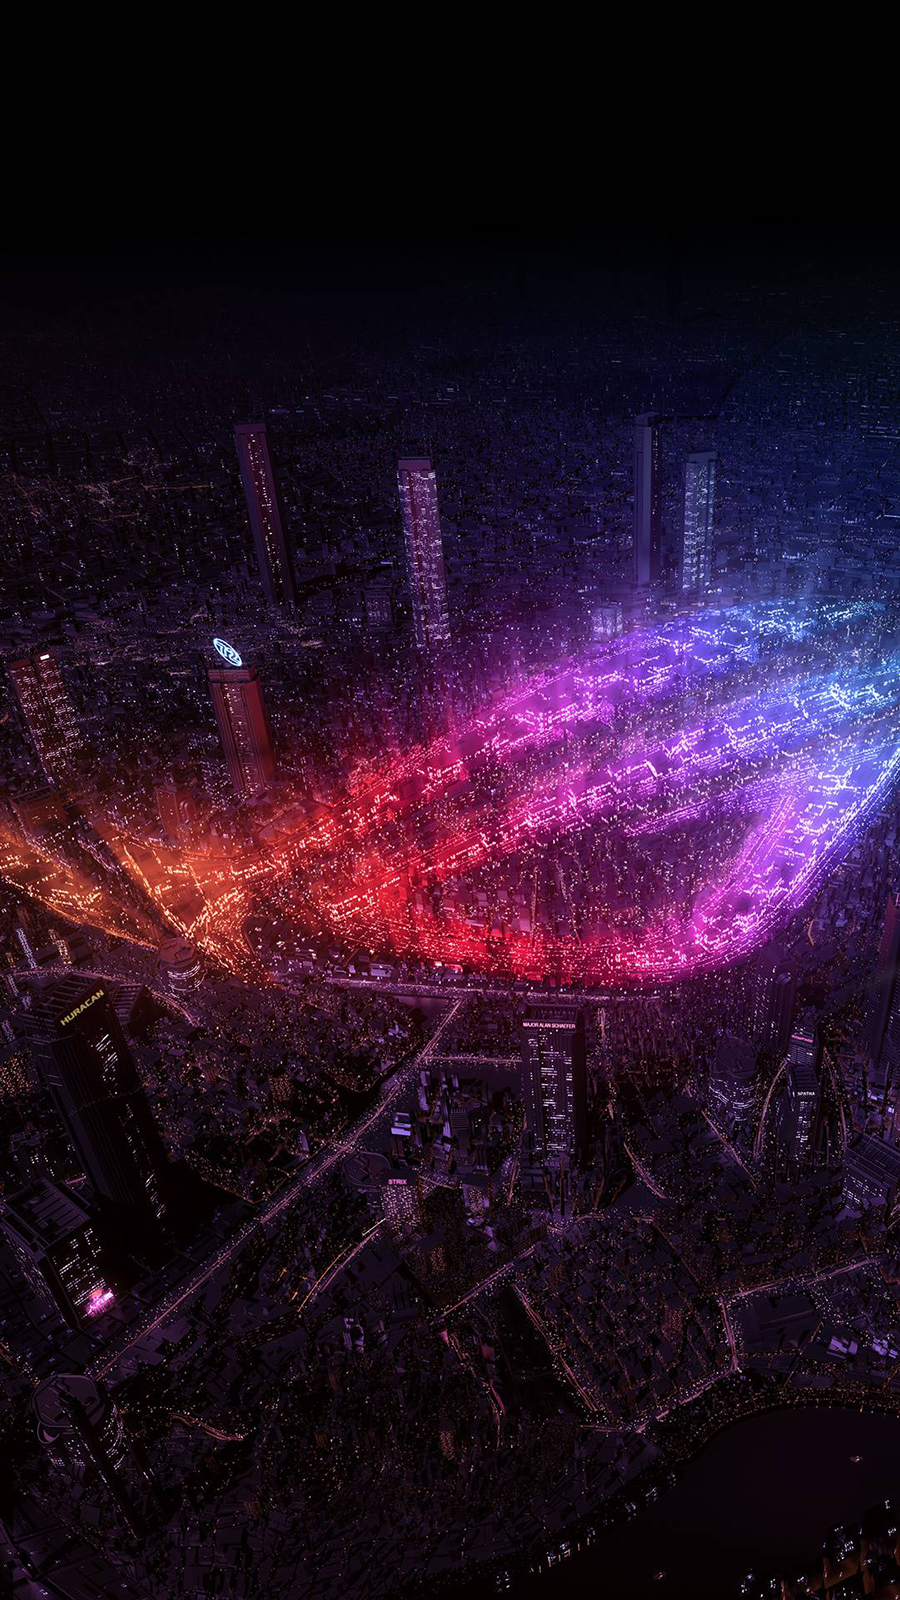 ROG, City Lights Wallpapers Now Download